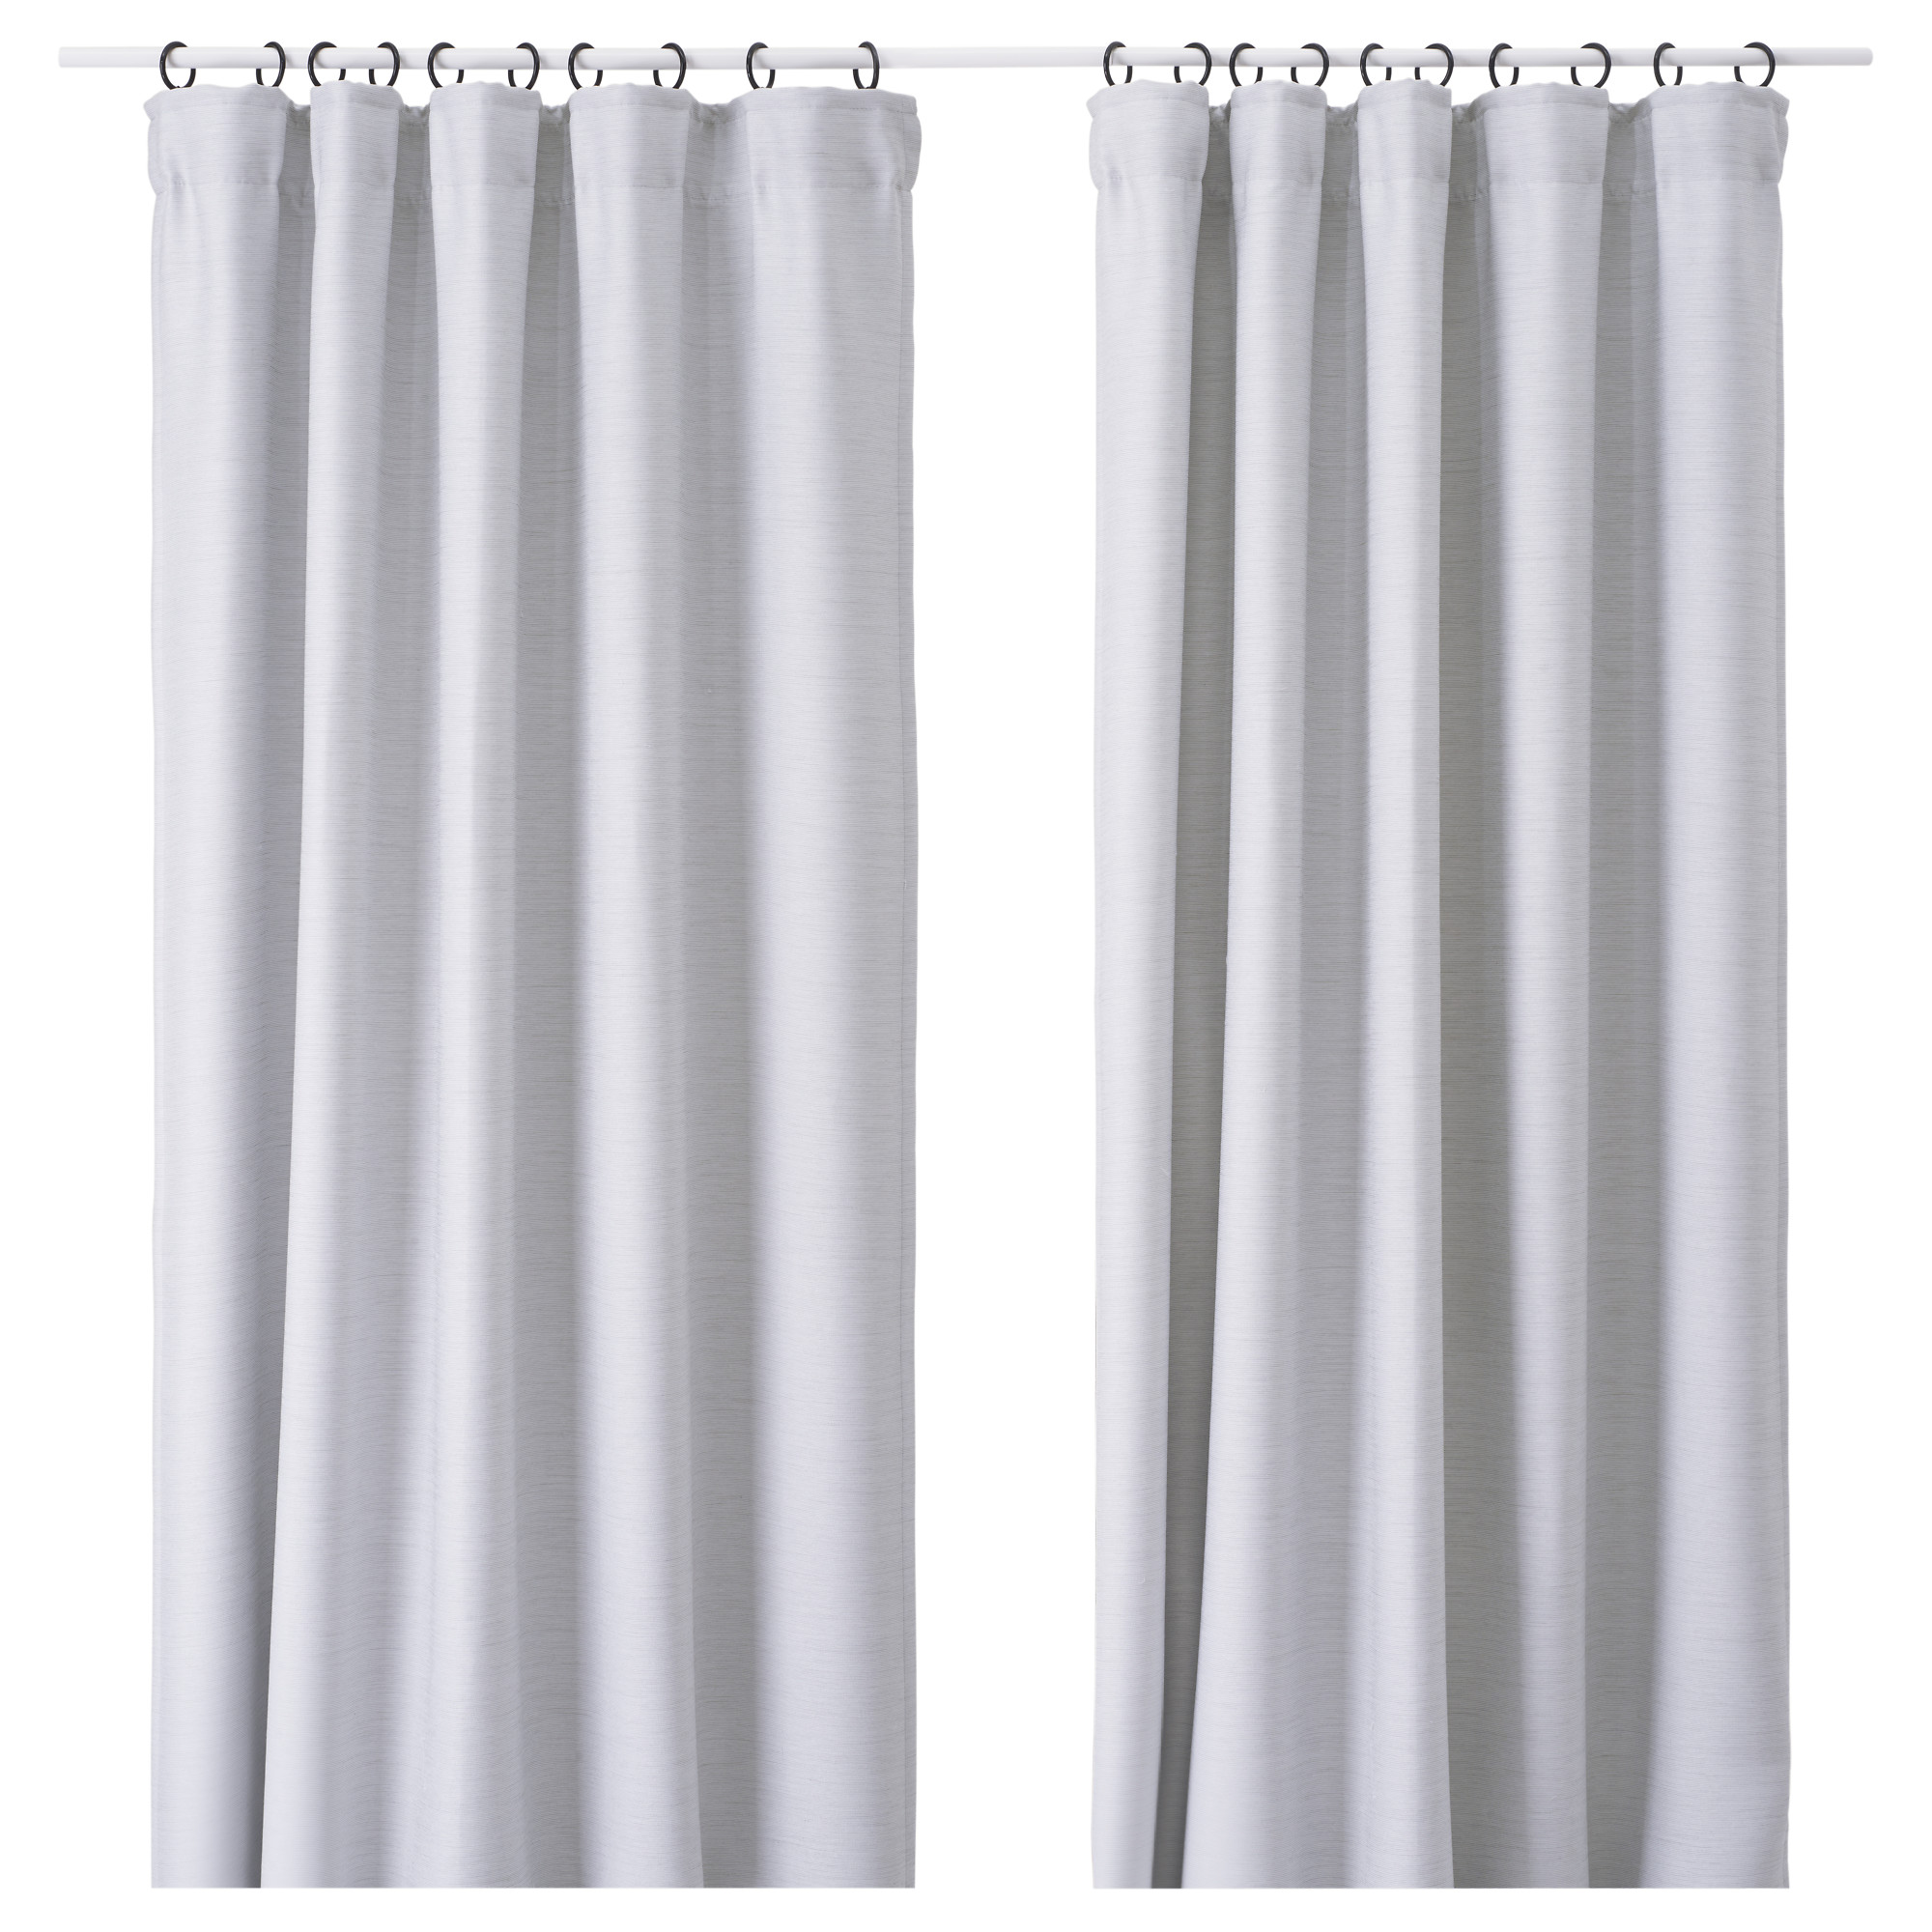 Black and white curtains bedroom - Vilborg Curtains 1 Pair Light Gray Length 98 Width 57